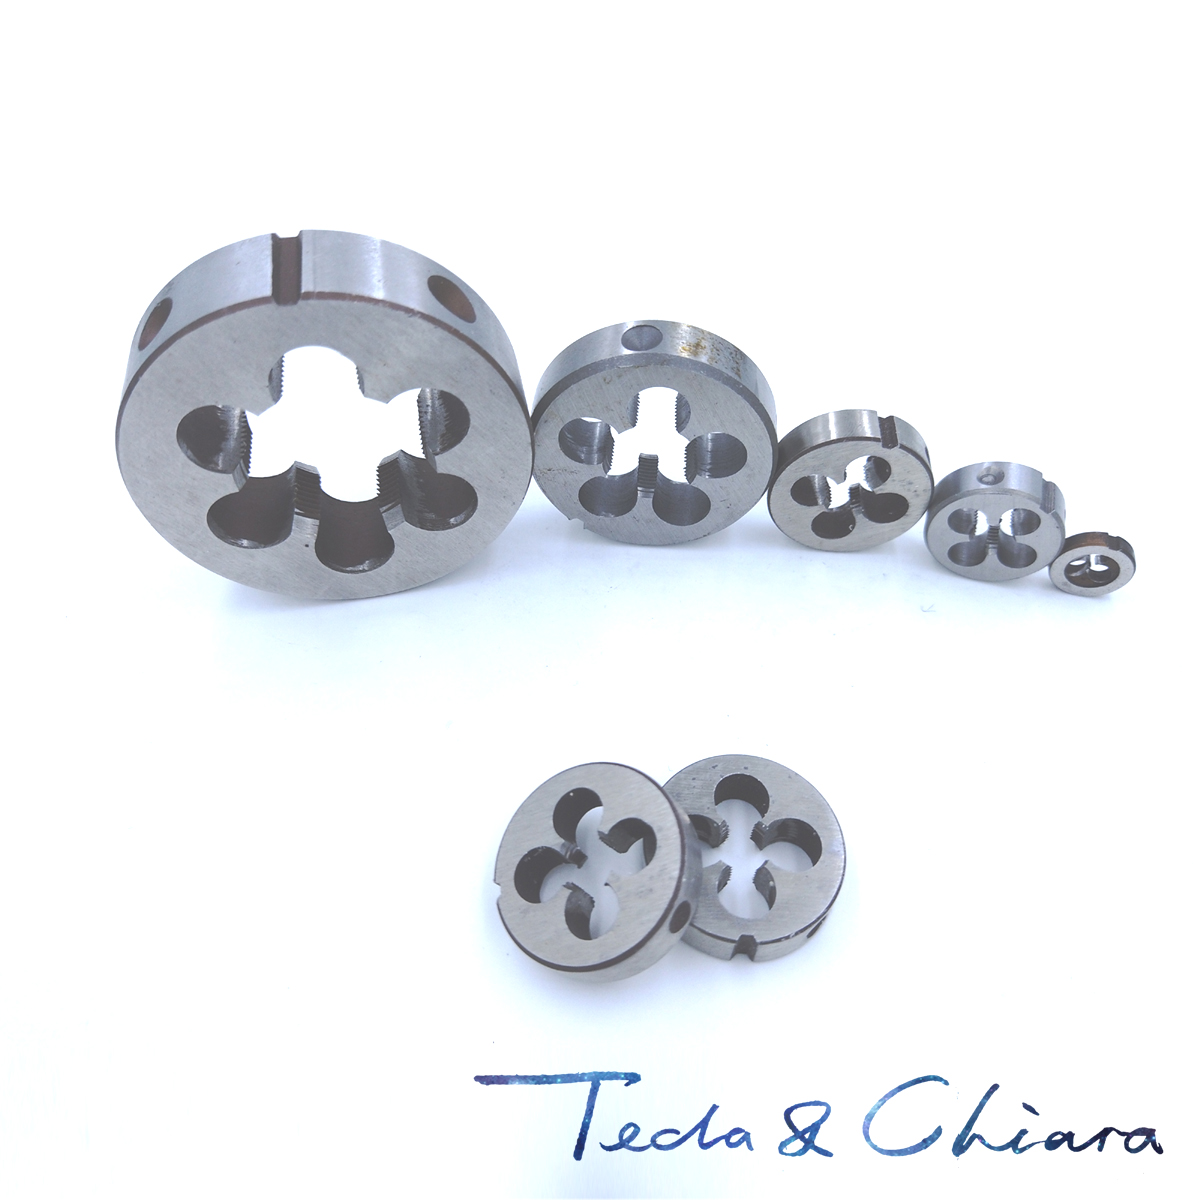 1Pc 5/8-11 5/8-12 5/8-14 5/8-16 UNC UN UNS Right Hand Die Threading Tools For Mold Machining 5/8